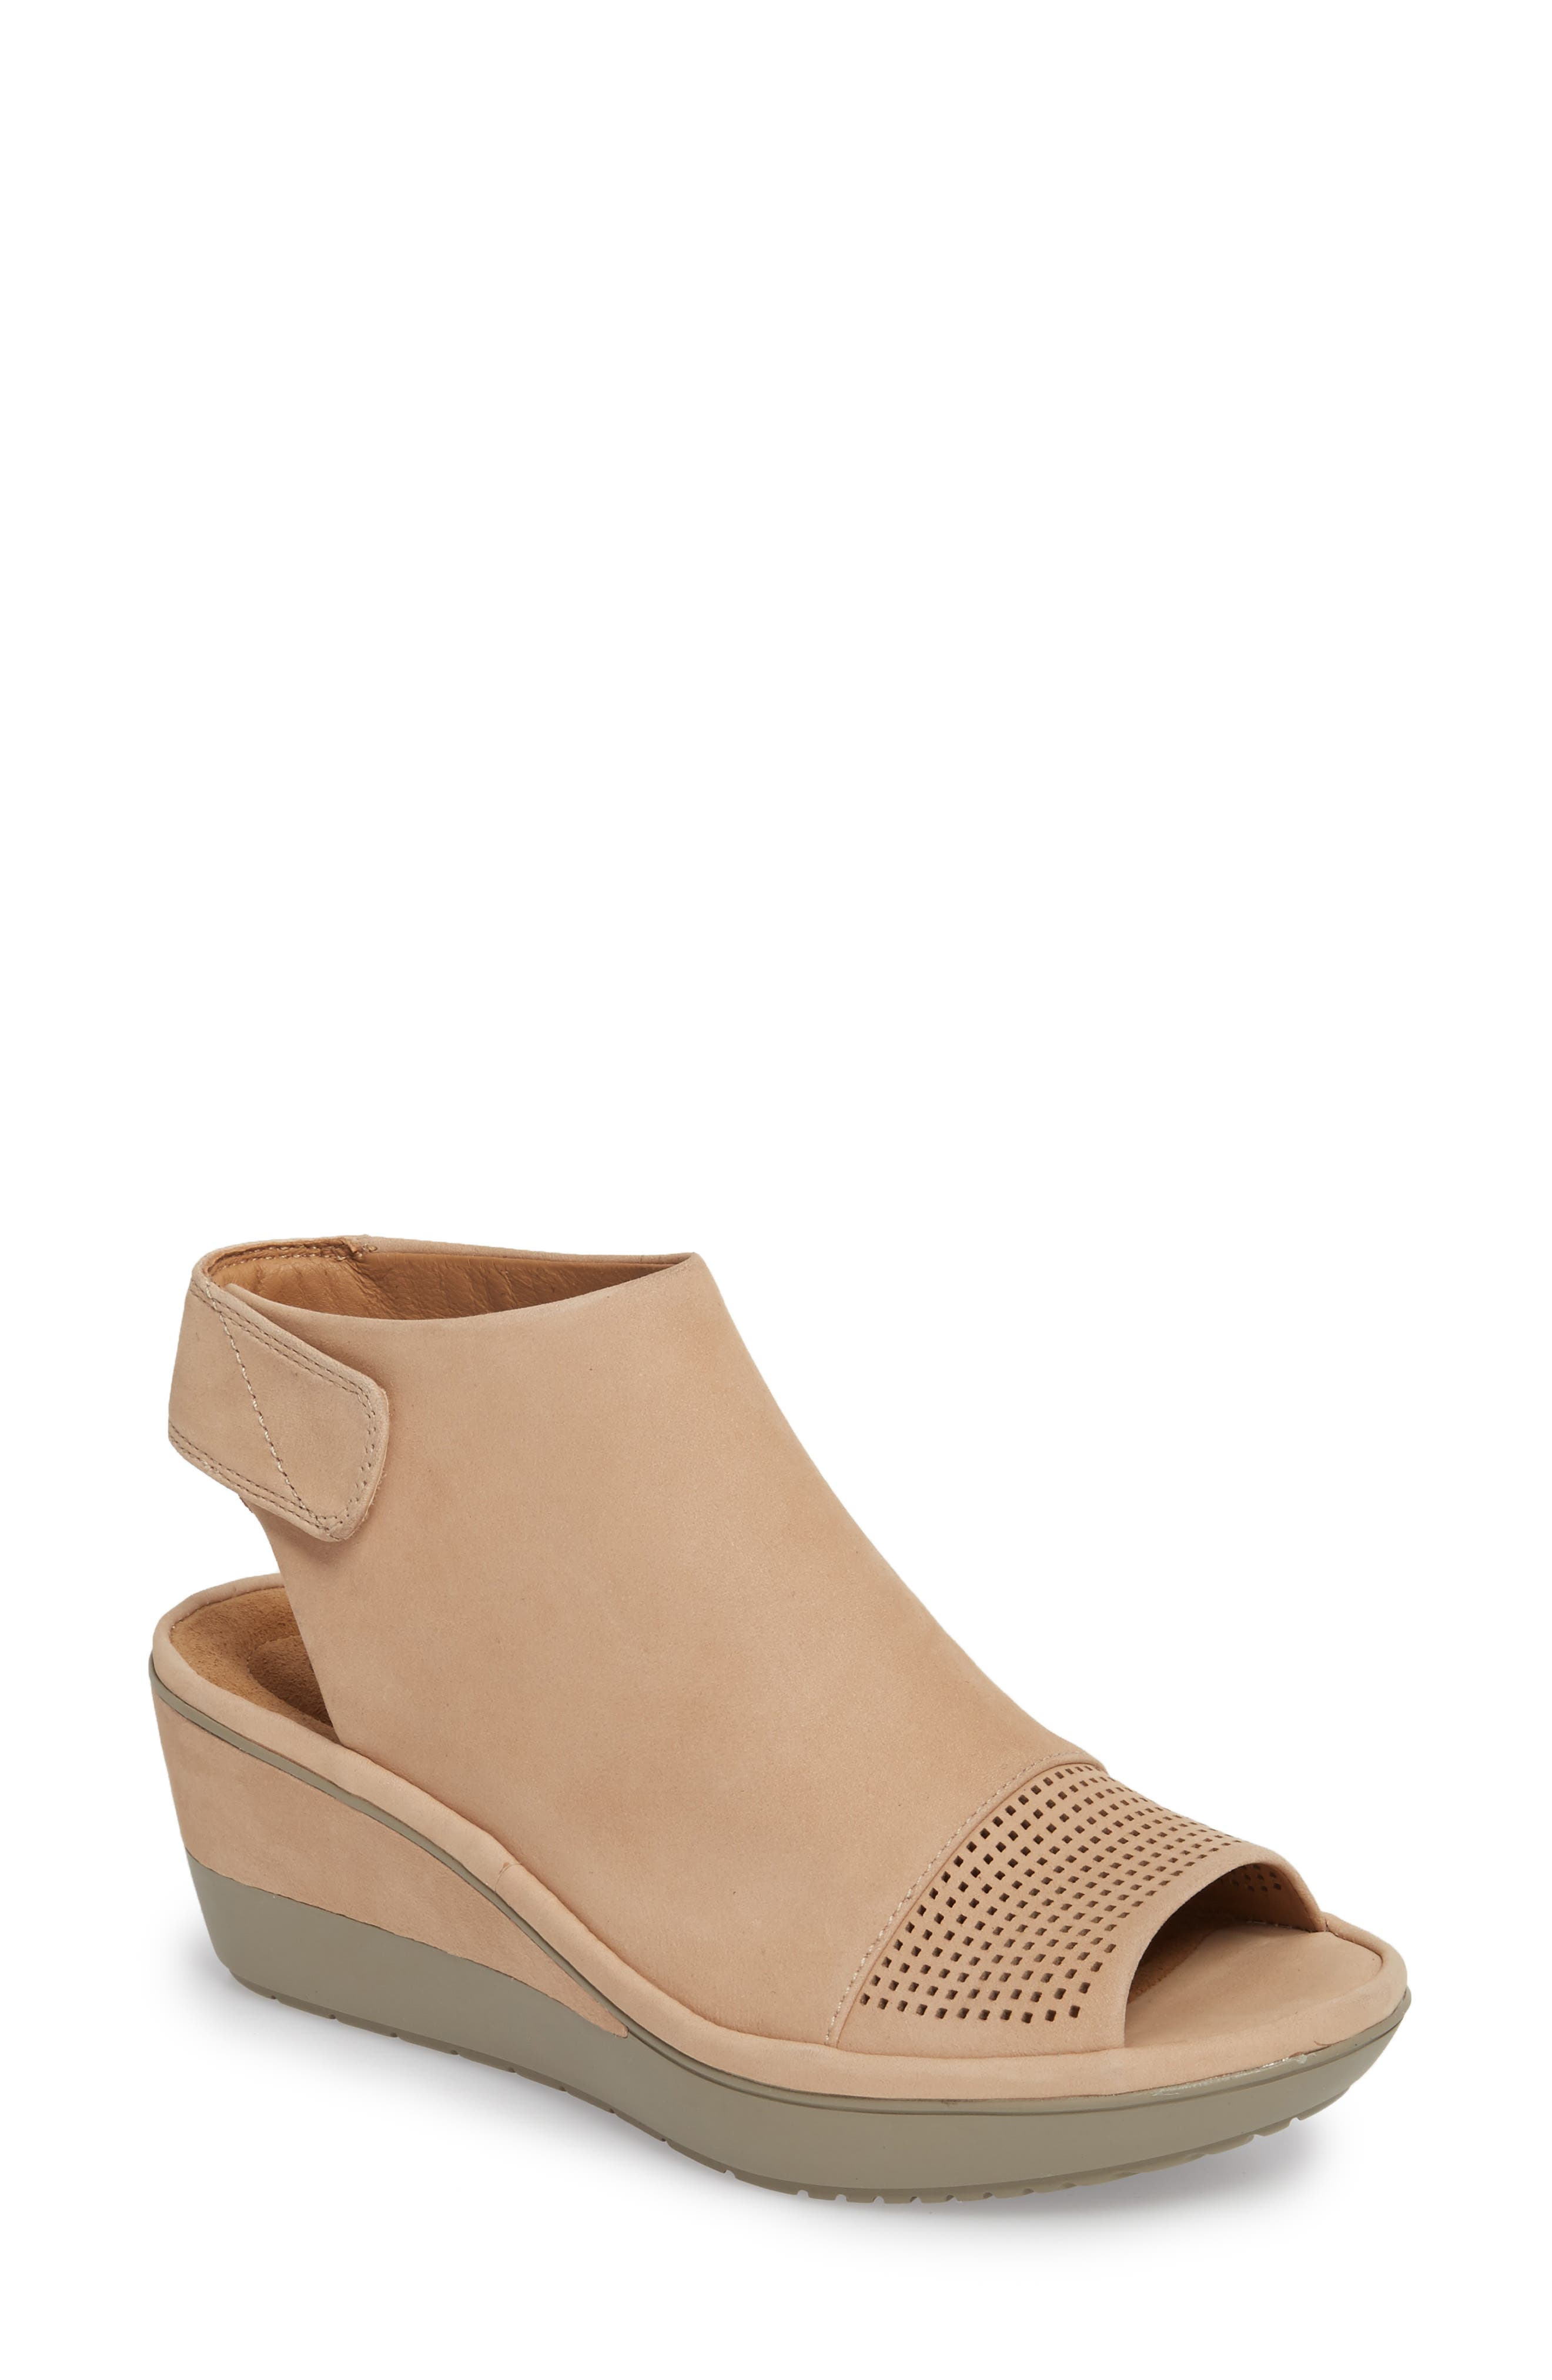 Wynnmere Abie Wedge Sandal,                         Main,                         color, 273